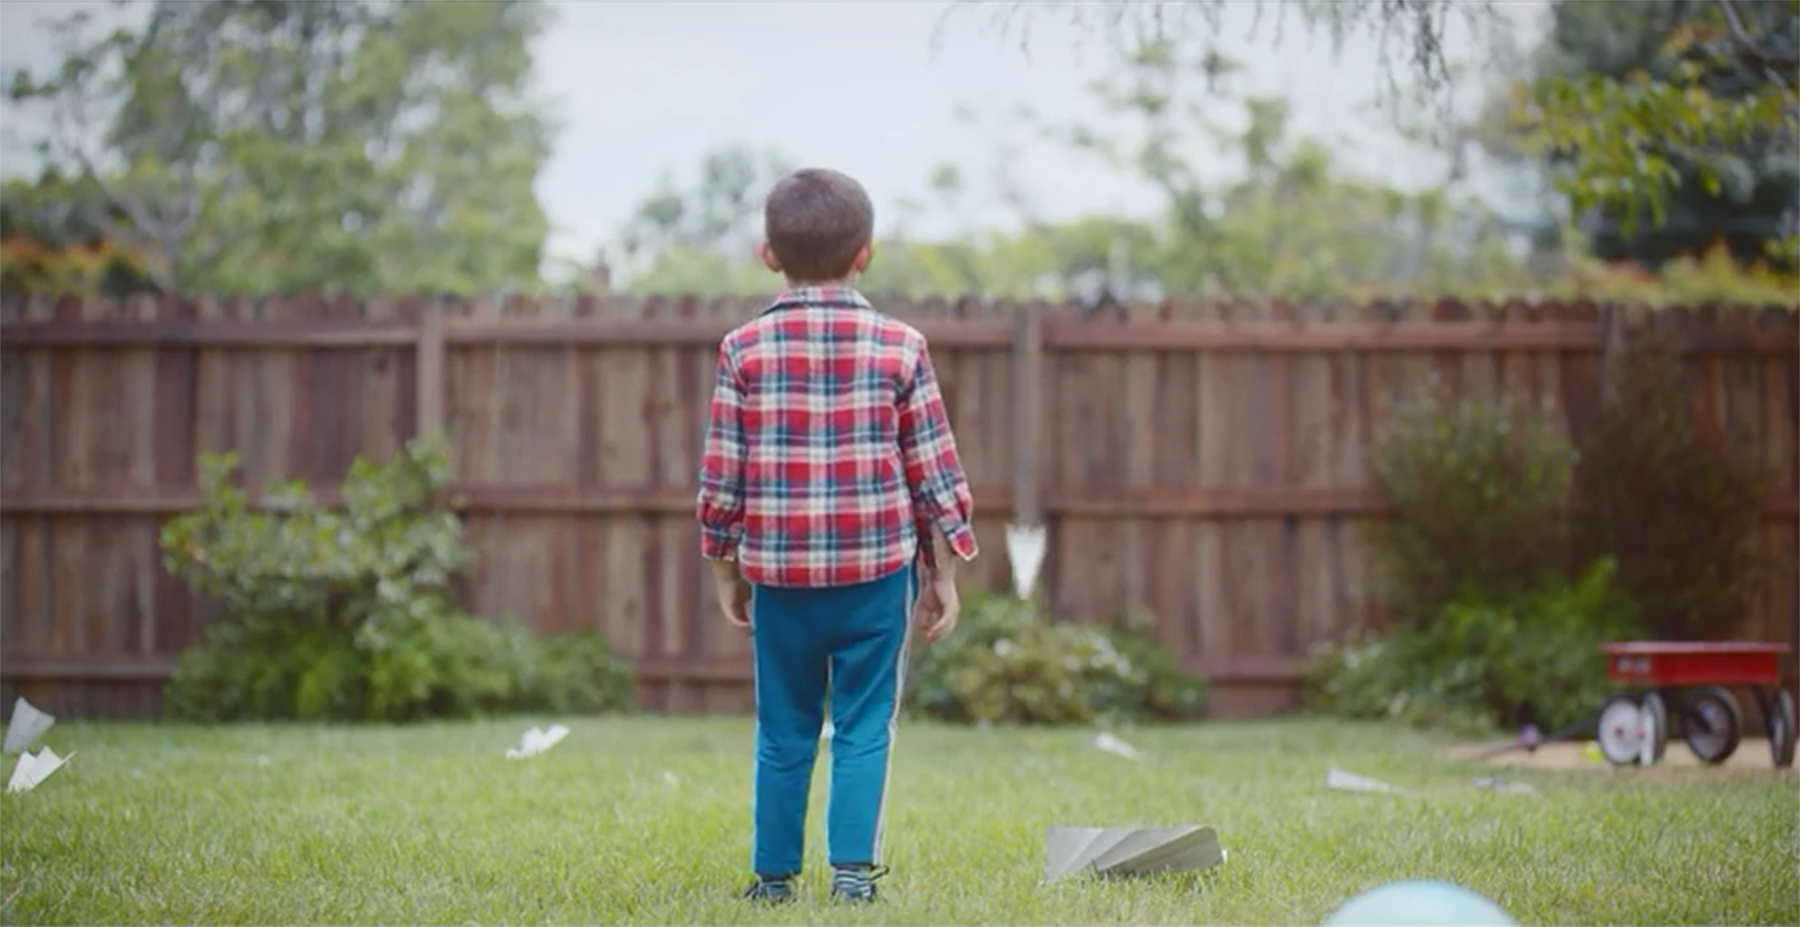 What do you do when you miss a dad who's far away? See how paper and packaging help a little boy and his father stay close.